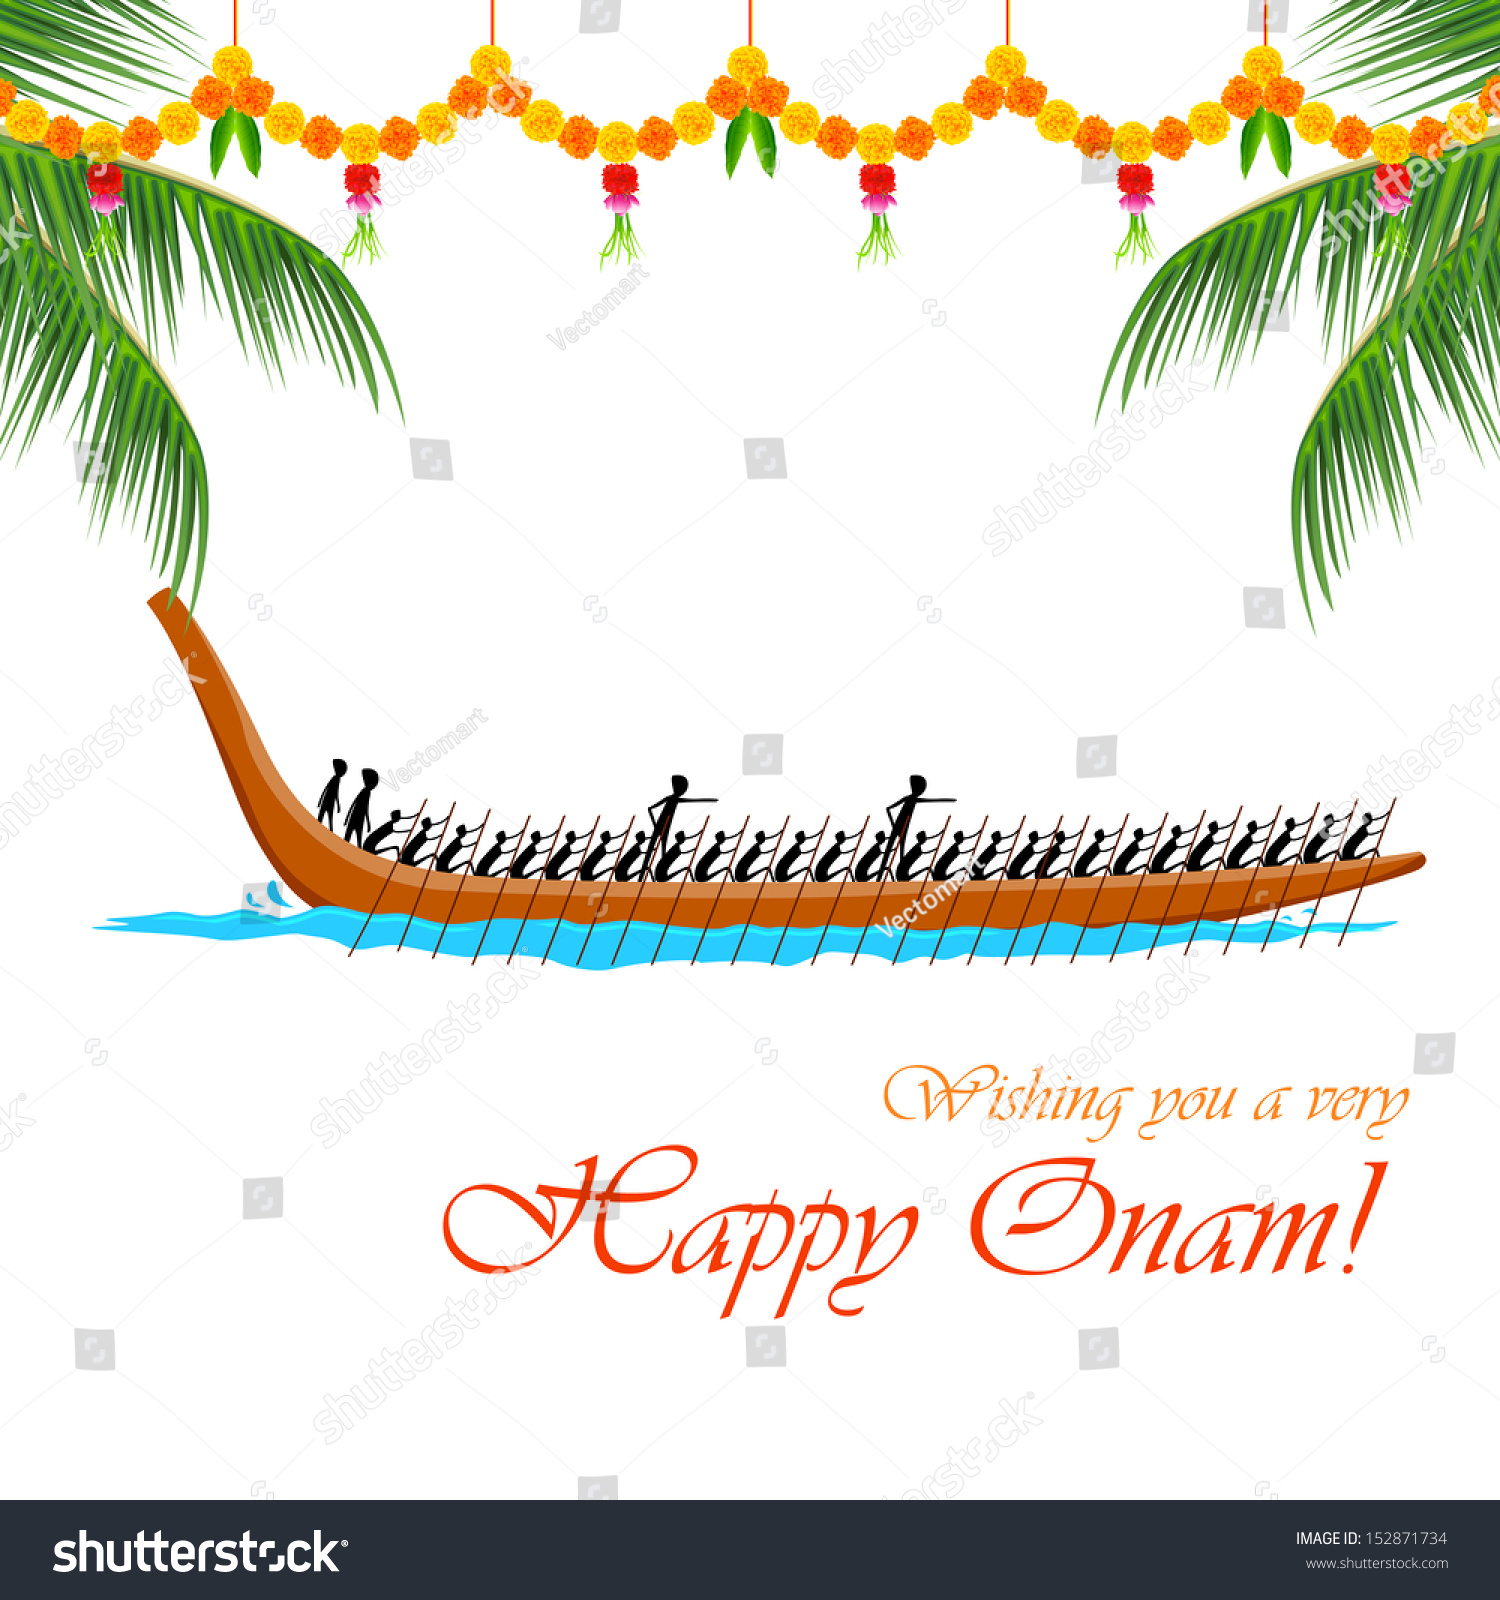 illustration of Boat Race of Kerla on Onam - Onam Boat PNG